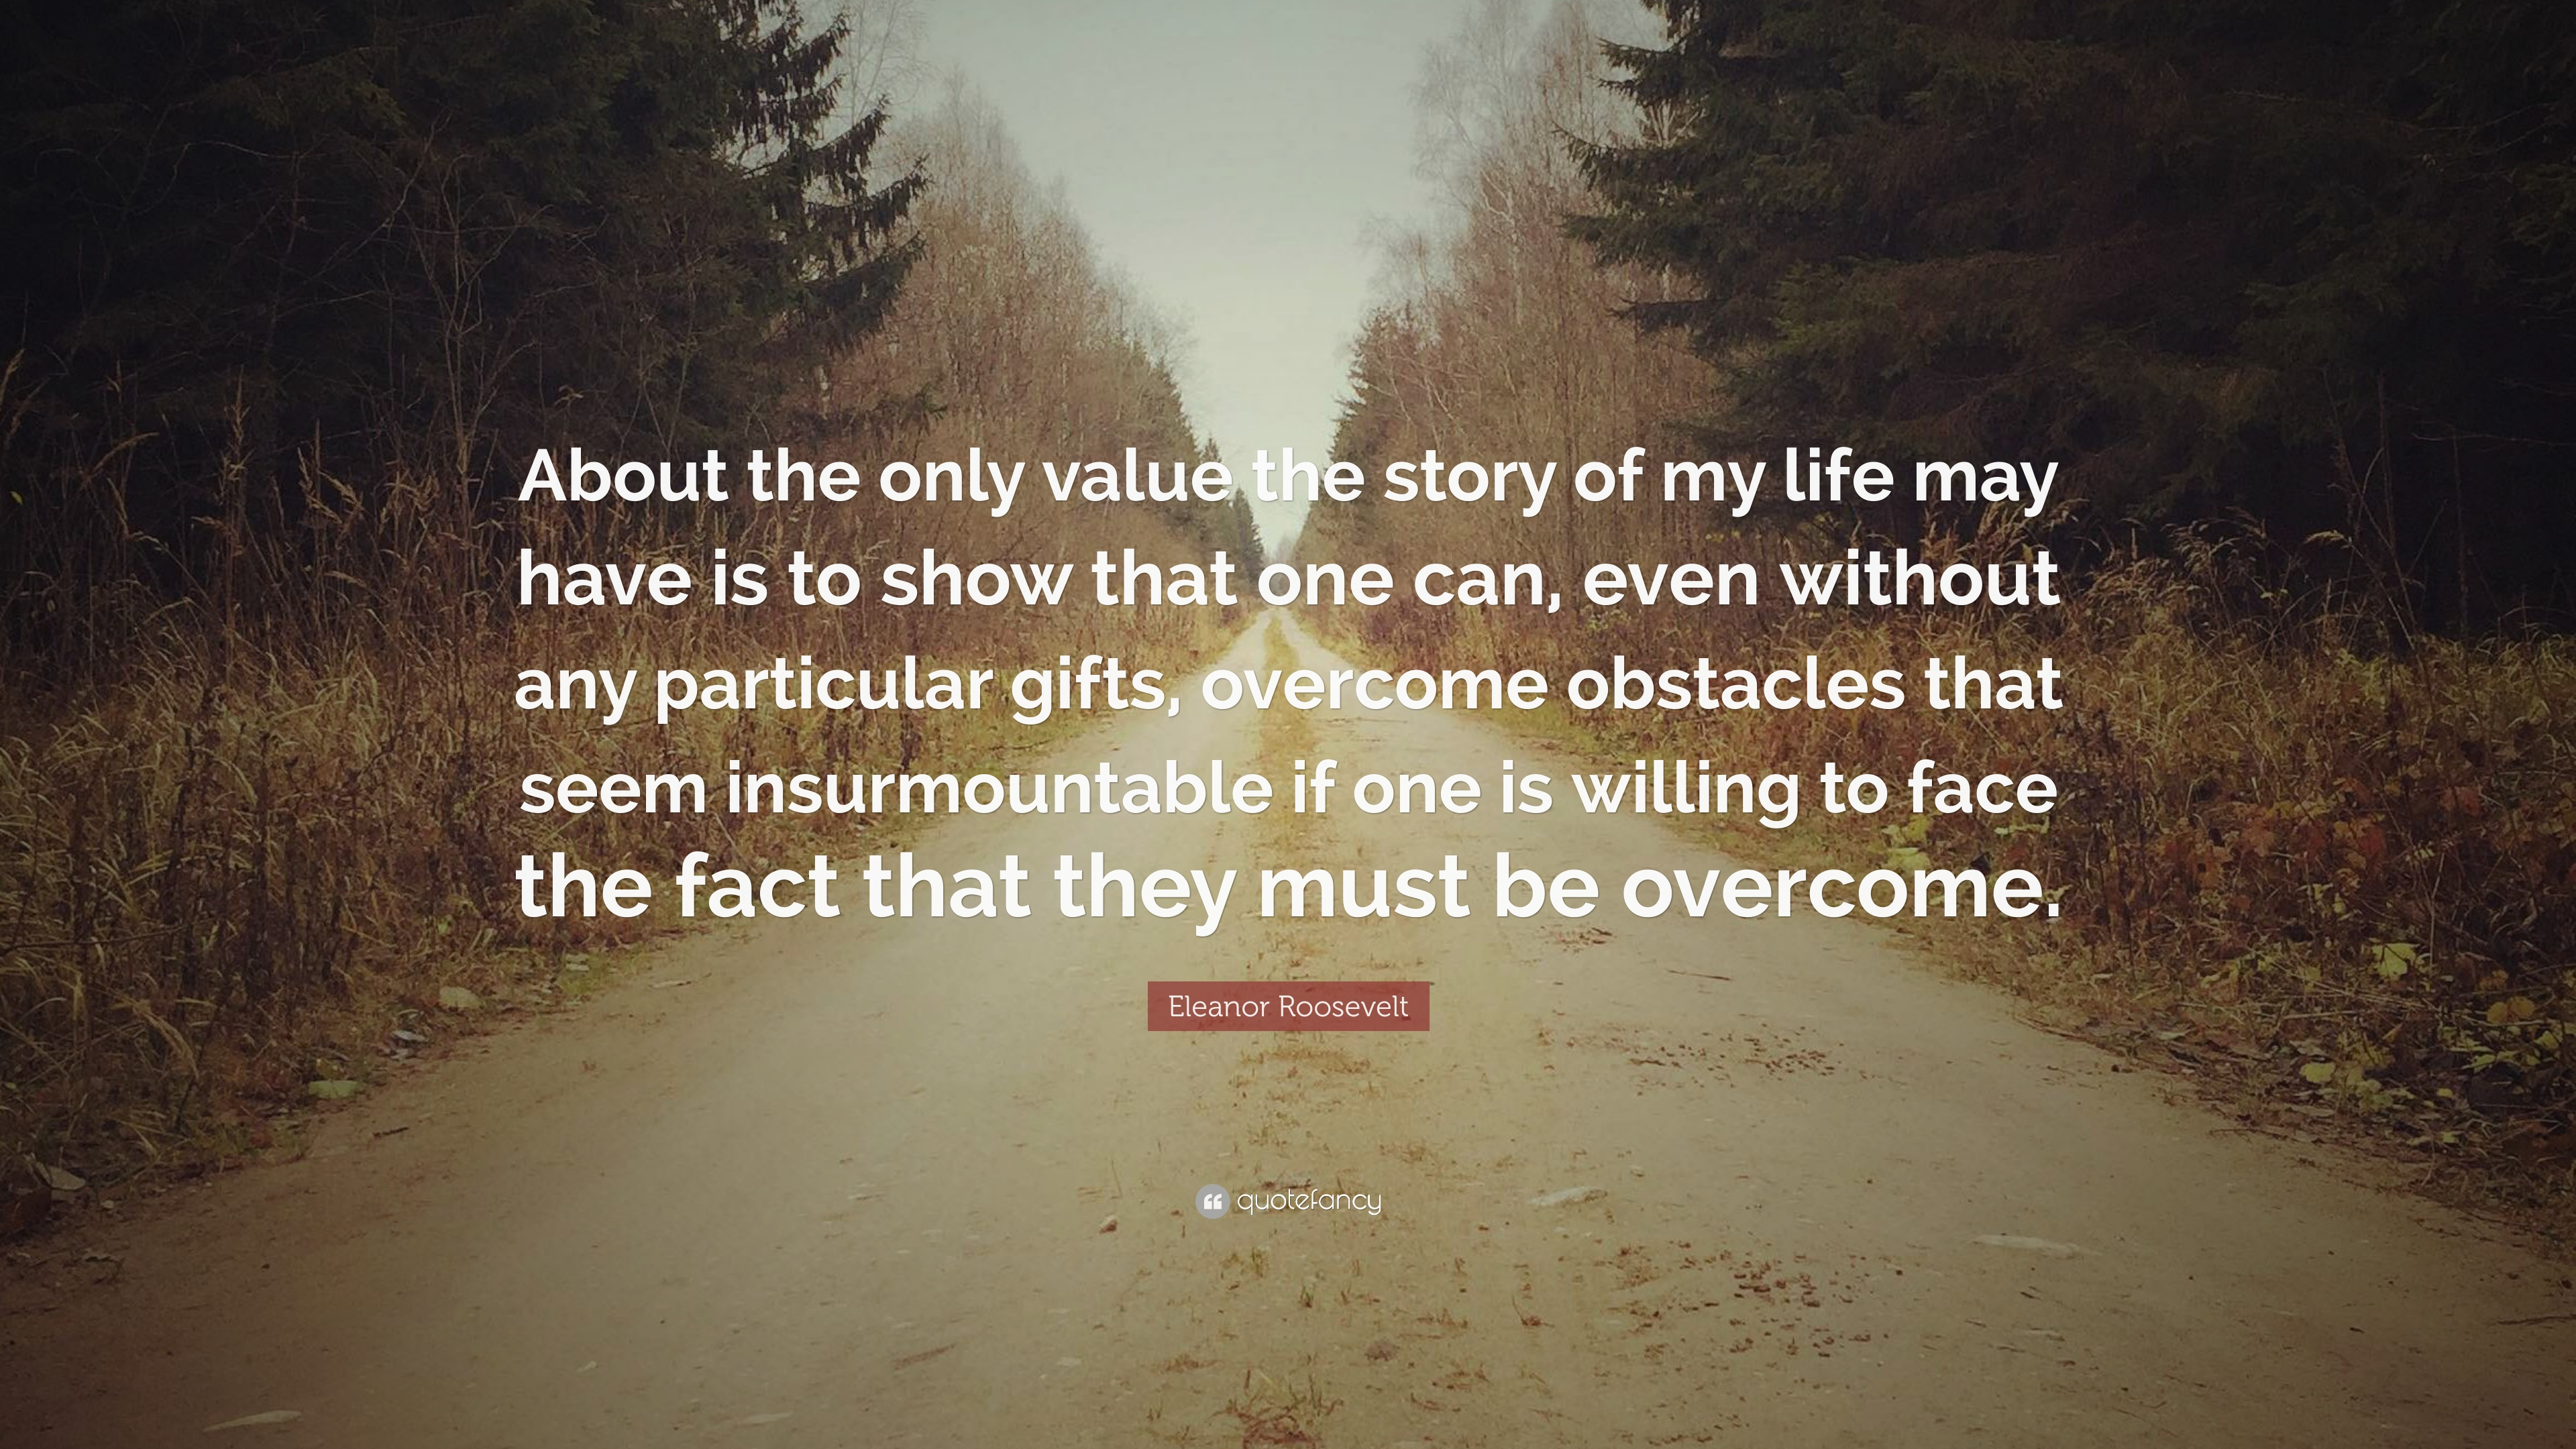 Eleanor Roosevelt Quote About The Only Value The Story Of My Life